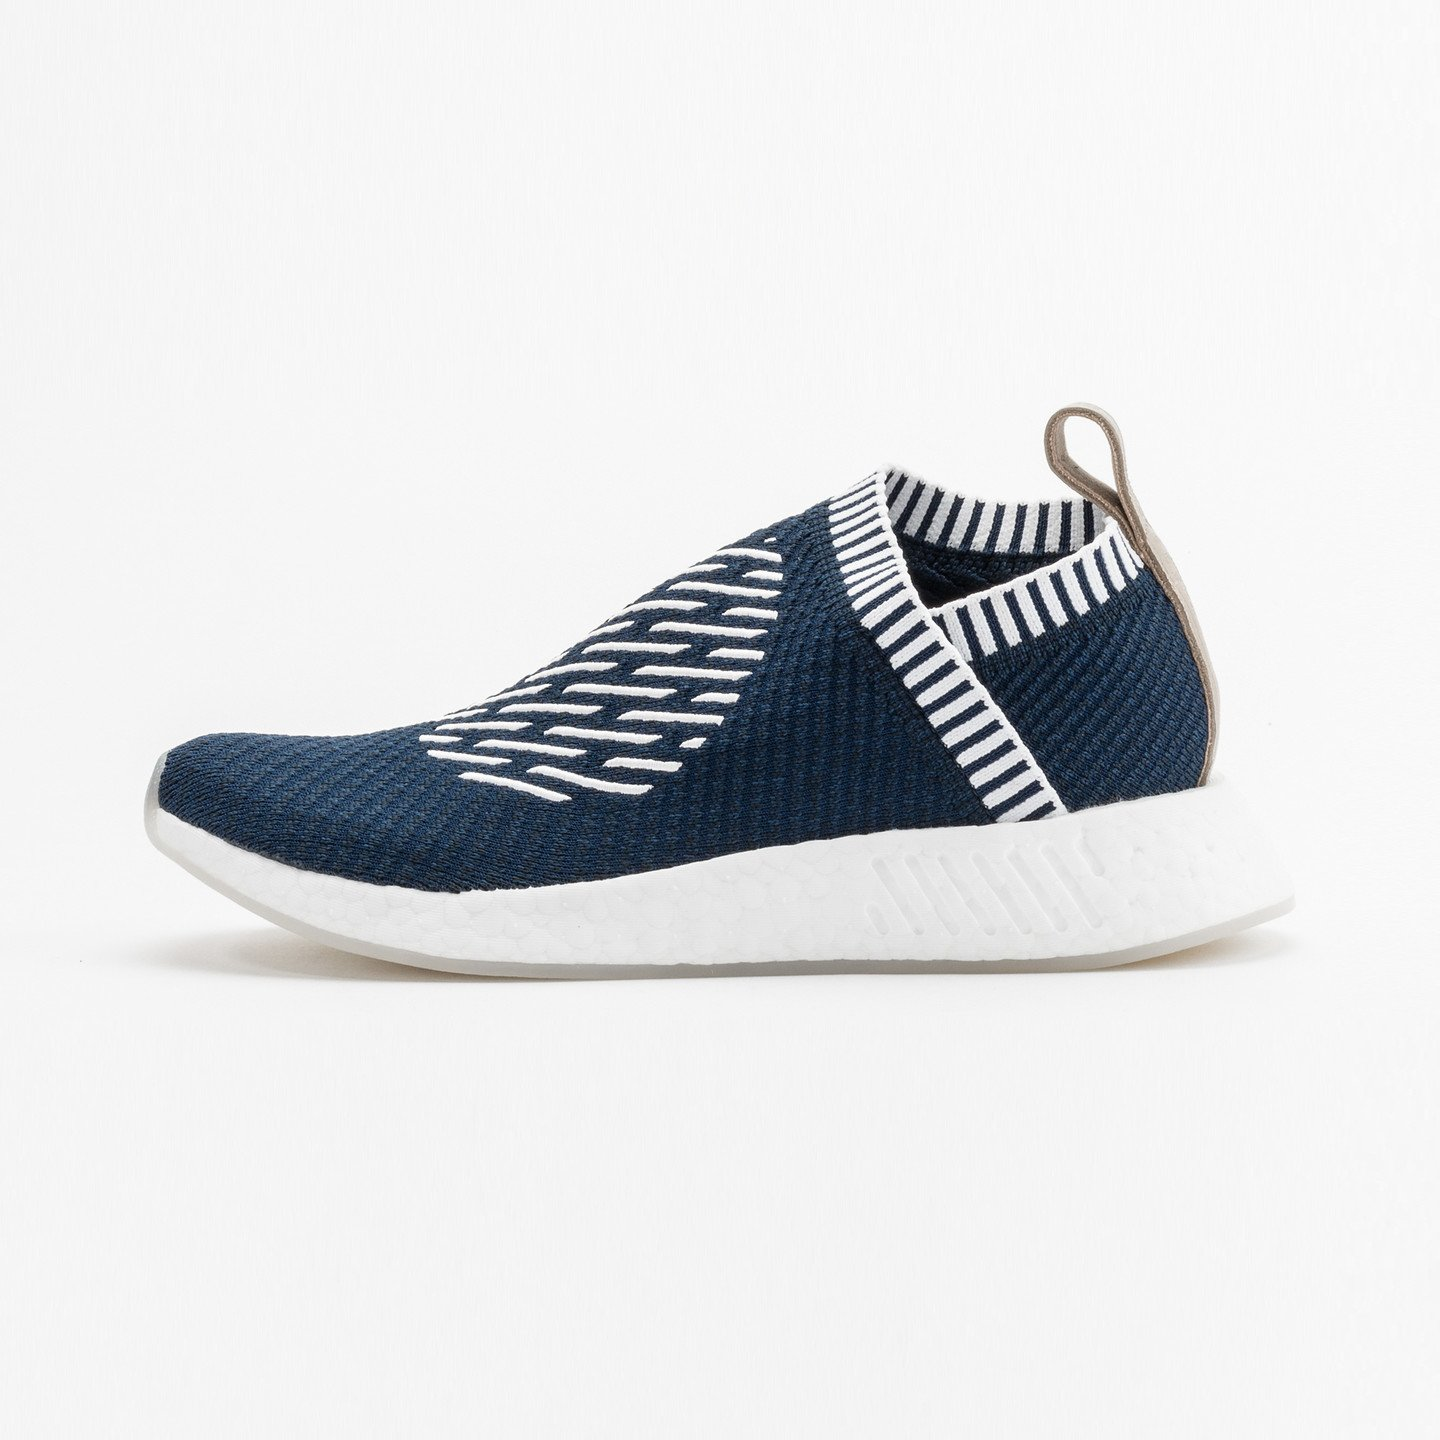 Adidas NMD CS2 PK Collegiate Navy / White BA7189-44